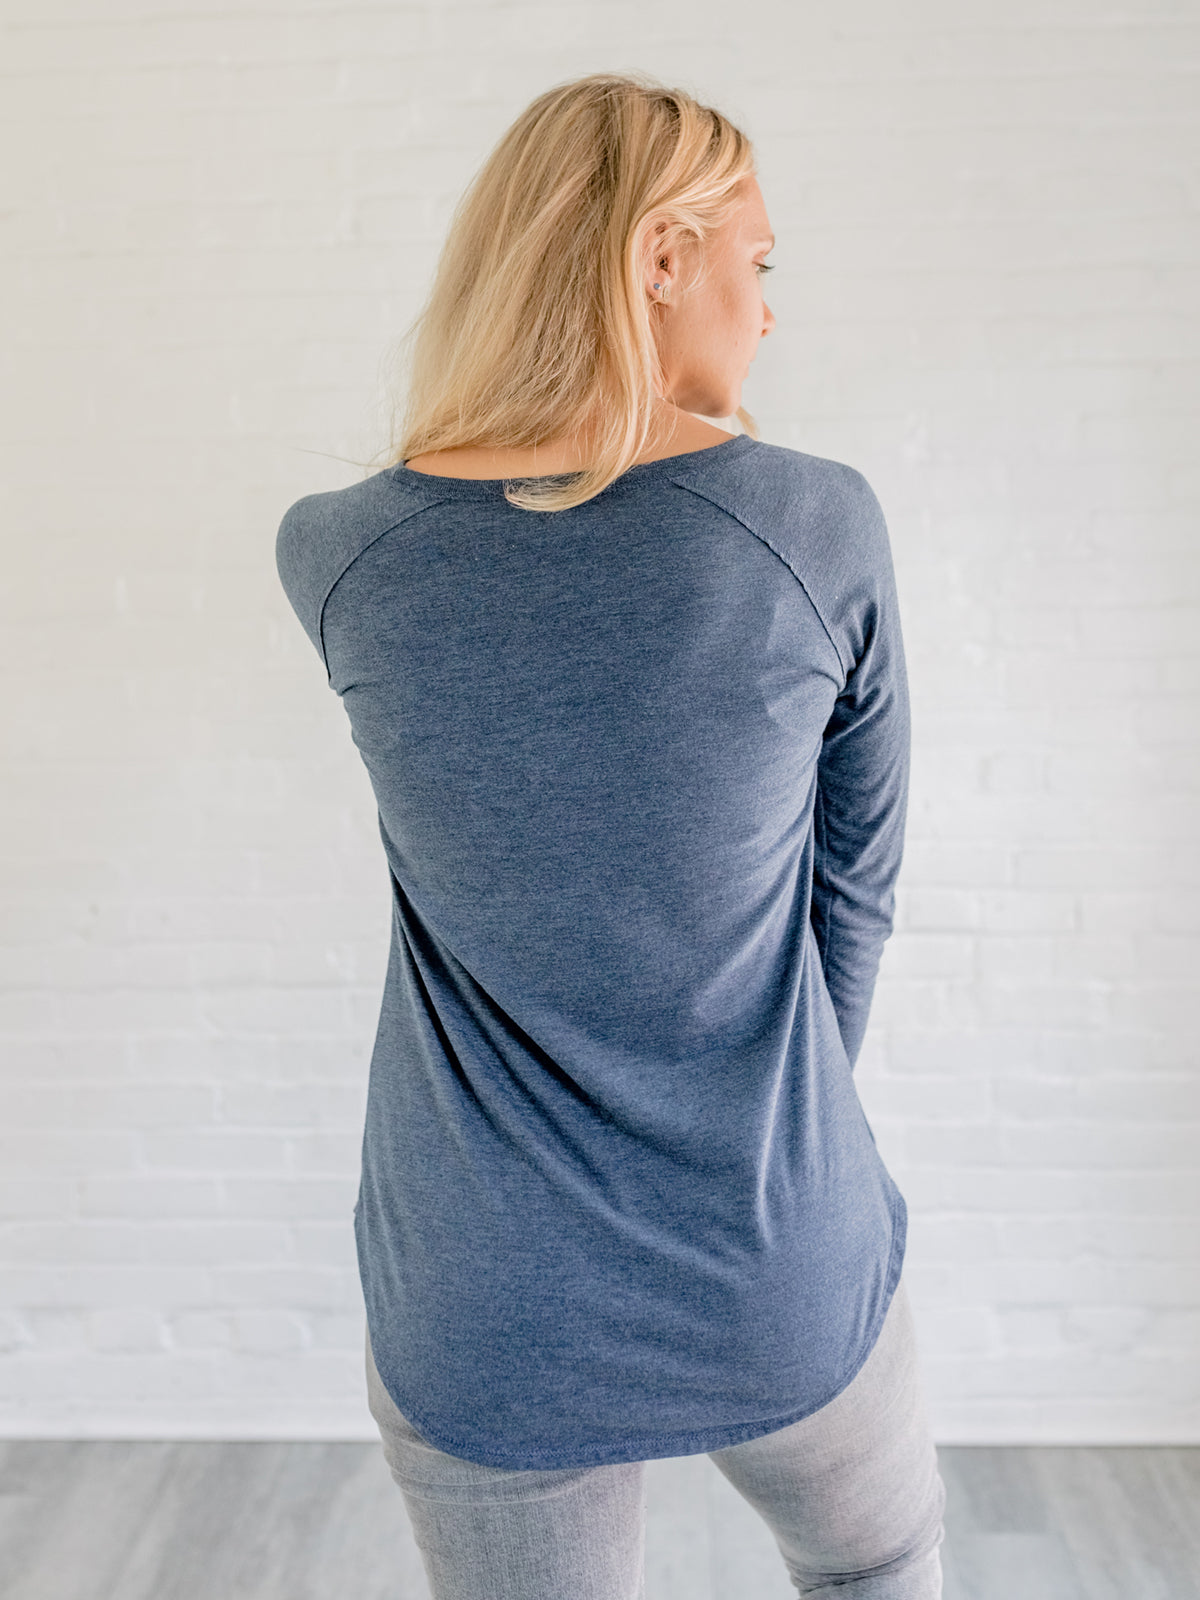 Freedom Sparrow - Blue Long Sleeve Scoop Neck Shirt